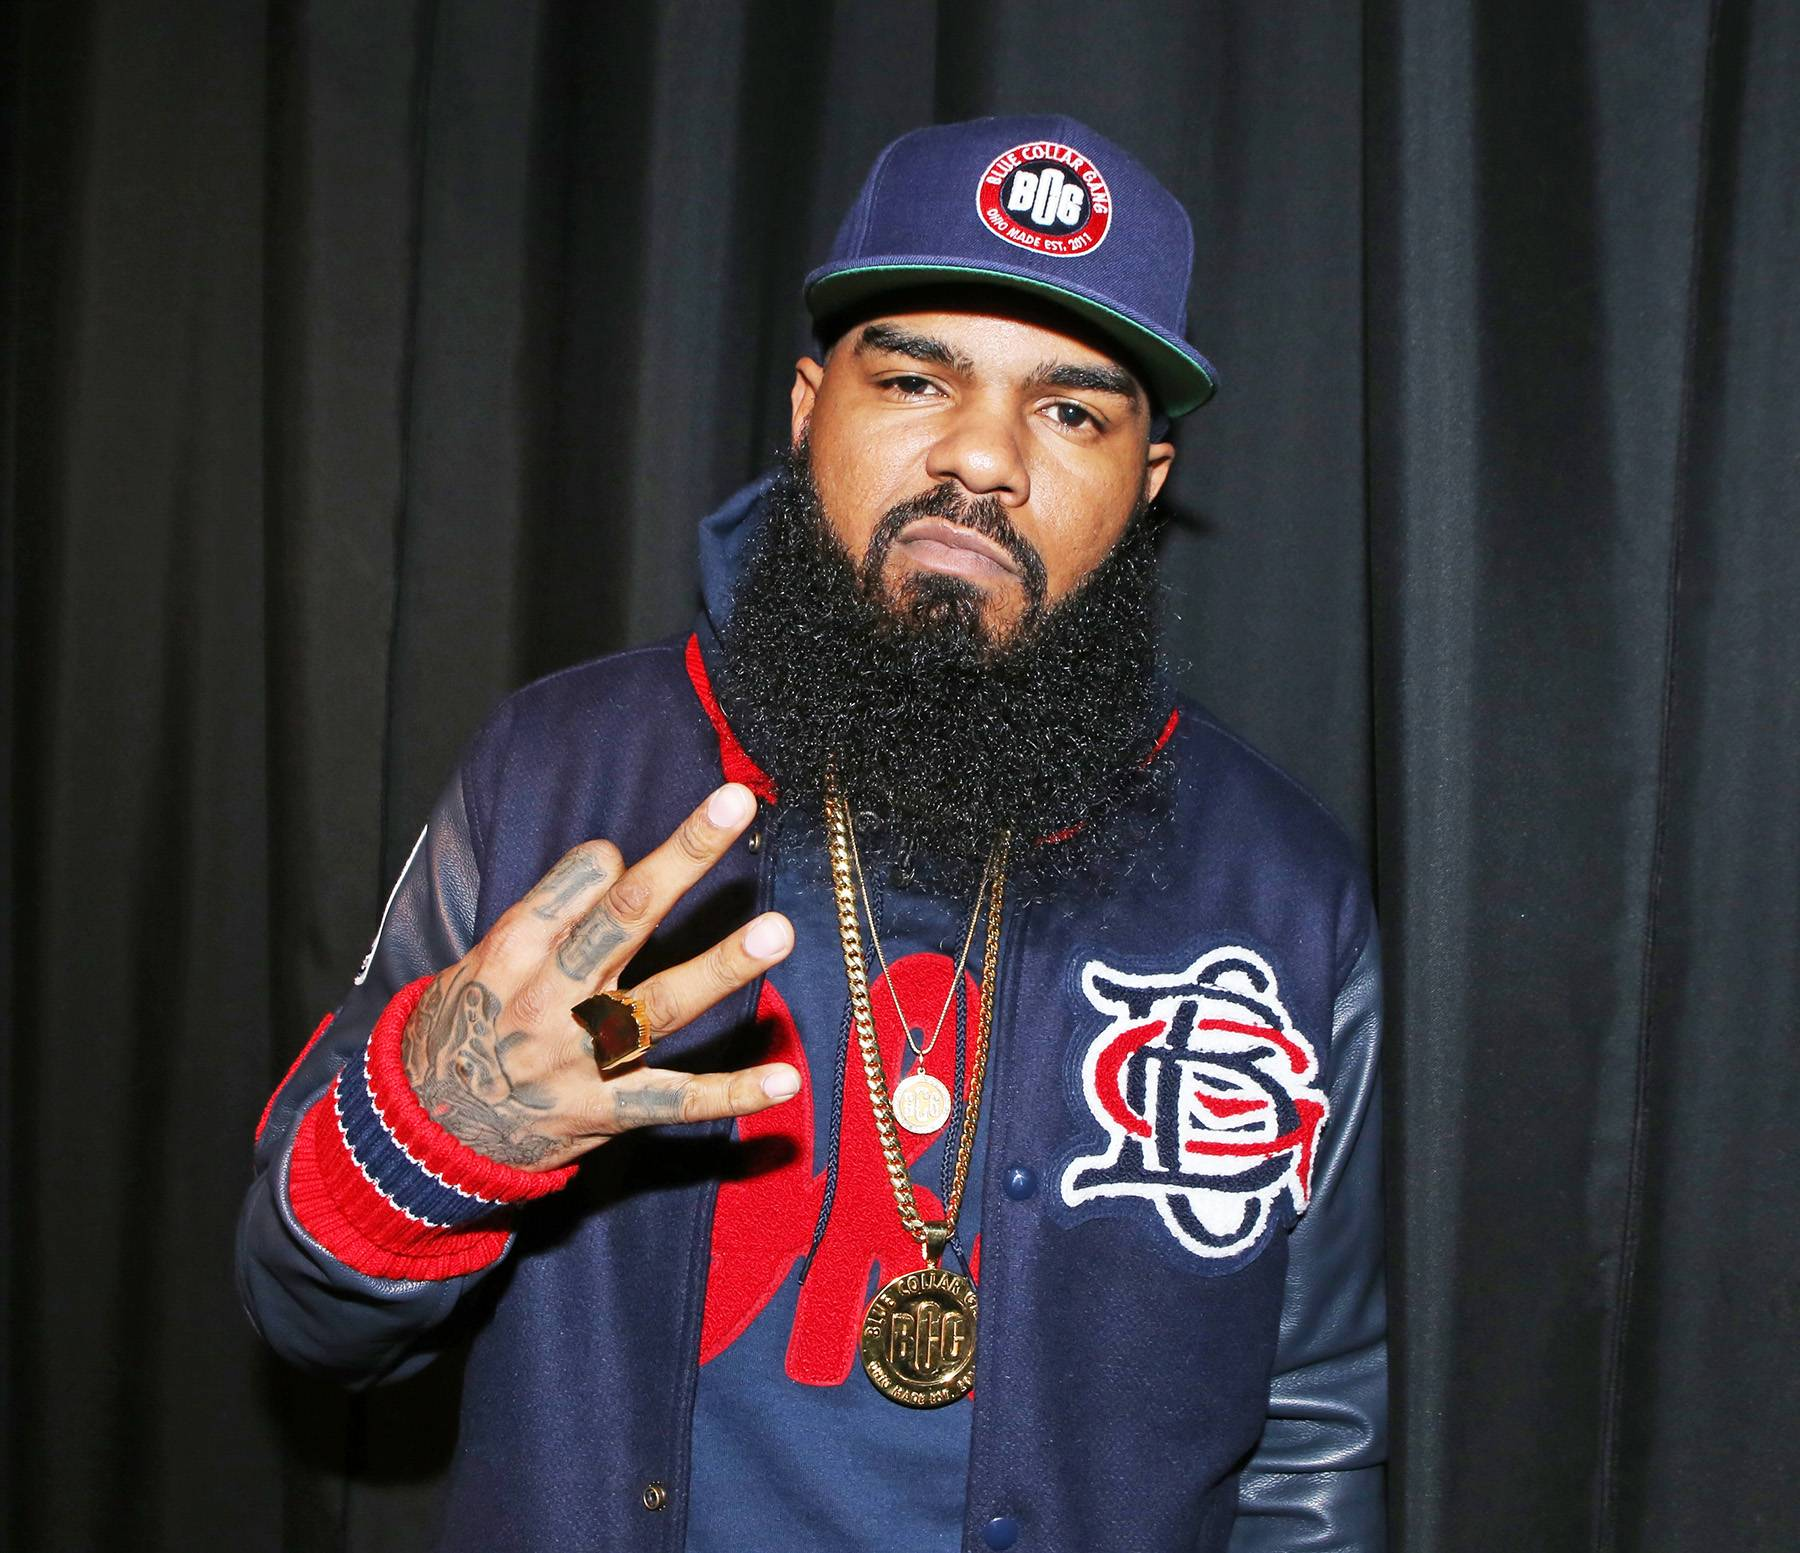 """Stalley Talks New Album - Recall Stalley gave listeners a chance to listen to his debut album, Ohio, at his West Coast-themed listening party a few weeks ago. Now, he?s dishing on the excitement of his album, what he wants listeners to get from it, and where he is going. ?I want the audience to grasp the originality behind it, because that?s important to me. I titled the album Ohio not only because of where I?m from, but it?s also an acronym for """"Over Here I?m Original."""" I was particular about this project. From the beat picking, the flow and the cadence I use in song.? Check out the rest of his interview with Vibe here.(Photo: Bennett Raglin/BET/Getty Images)"""